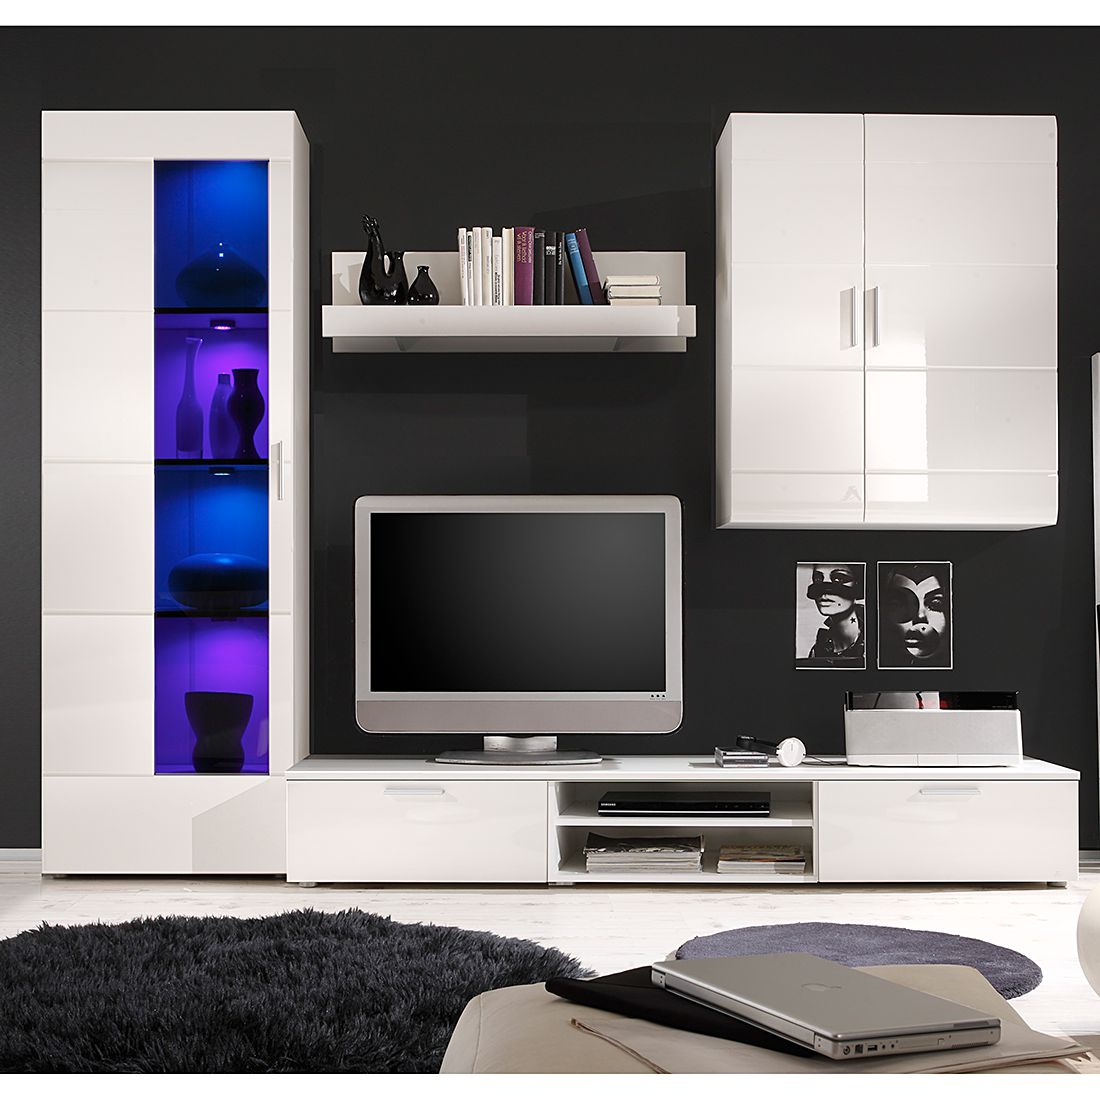 wohnwand dark moon i 4 teilig hochglanz wei absetzung schwarz ohne beleuchtung schrank. Black Bedroom Furniture Sets. Home Design Ideas